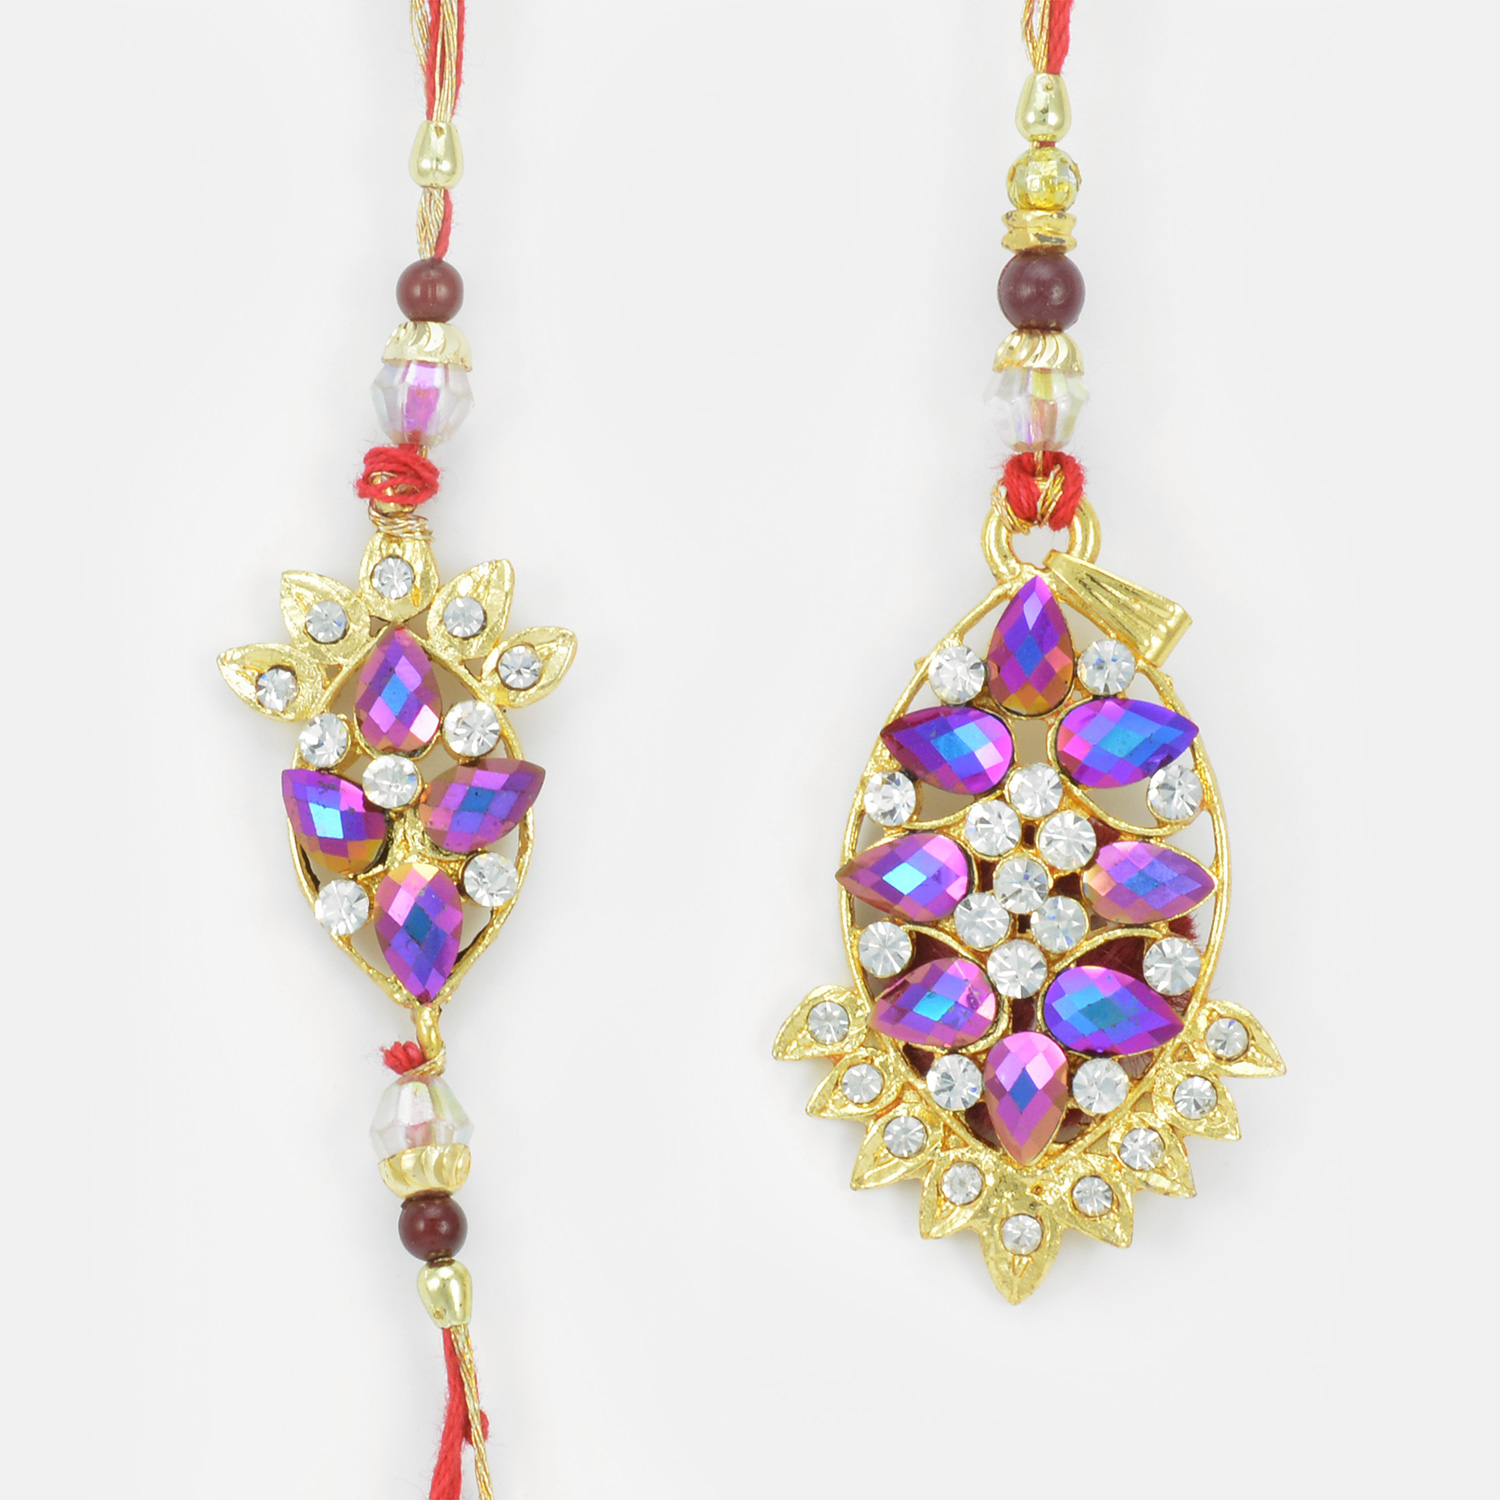 Attractive Cut Shaped Colorful Gems Rakhi Set for Bhaiya and Bhabhi